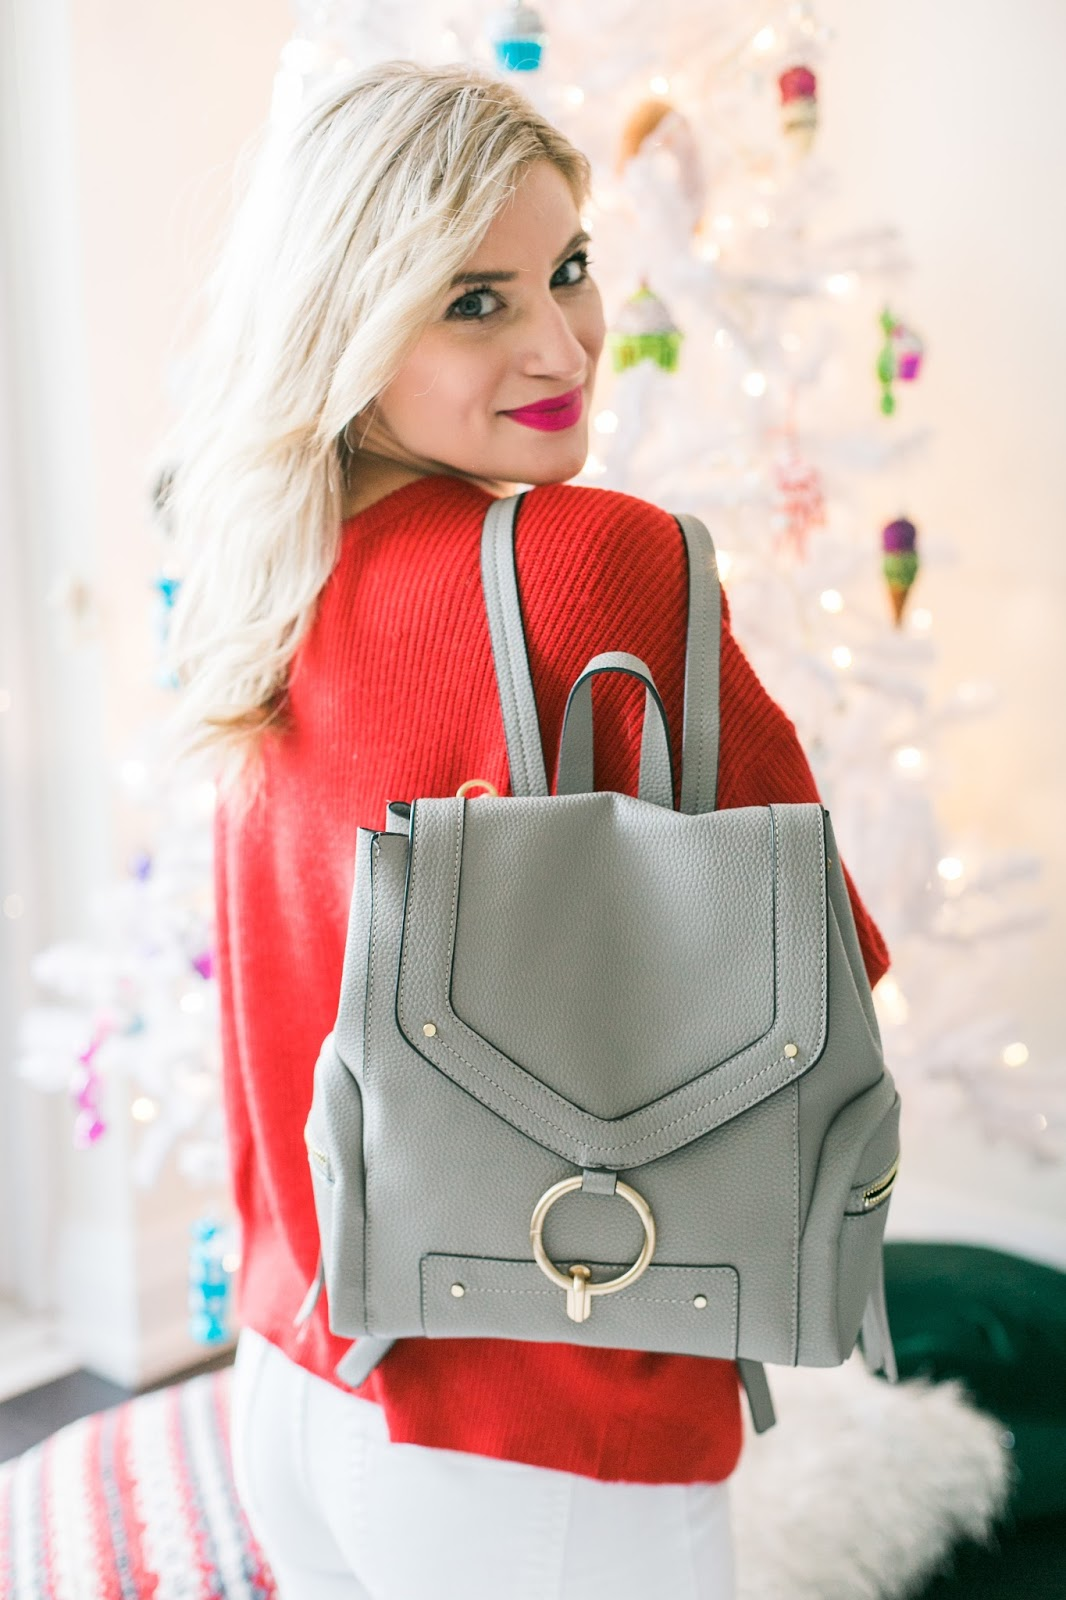 Bijuleni - Holiday Gift Guide For Her With Holt Renfrew Centre - The Perfect backpack for carrying your camera in